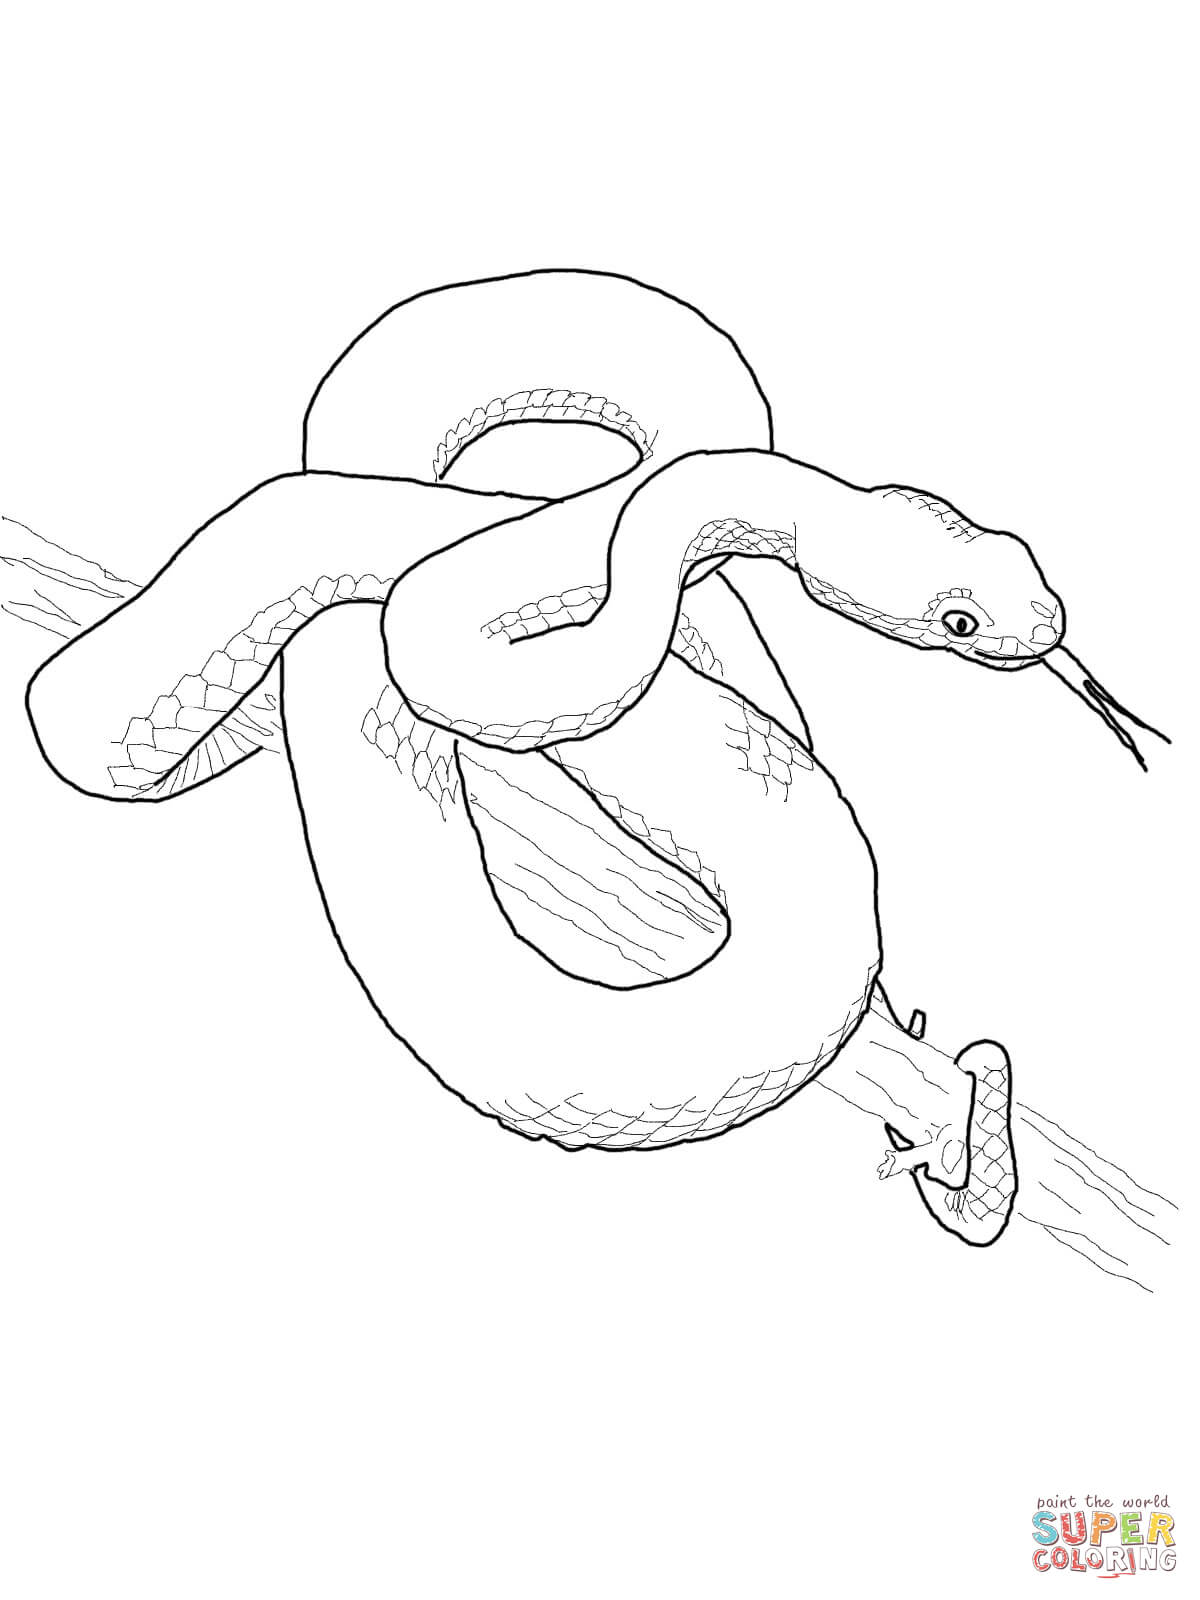 1200x1600 Snake Coloring Pages Page Image Clipart Images